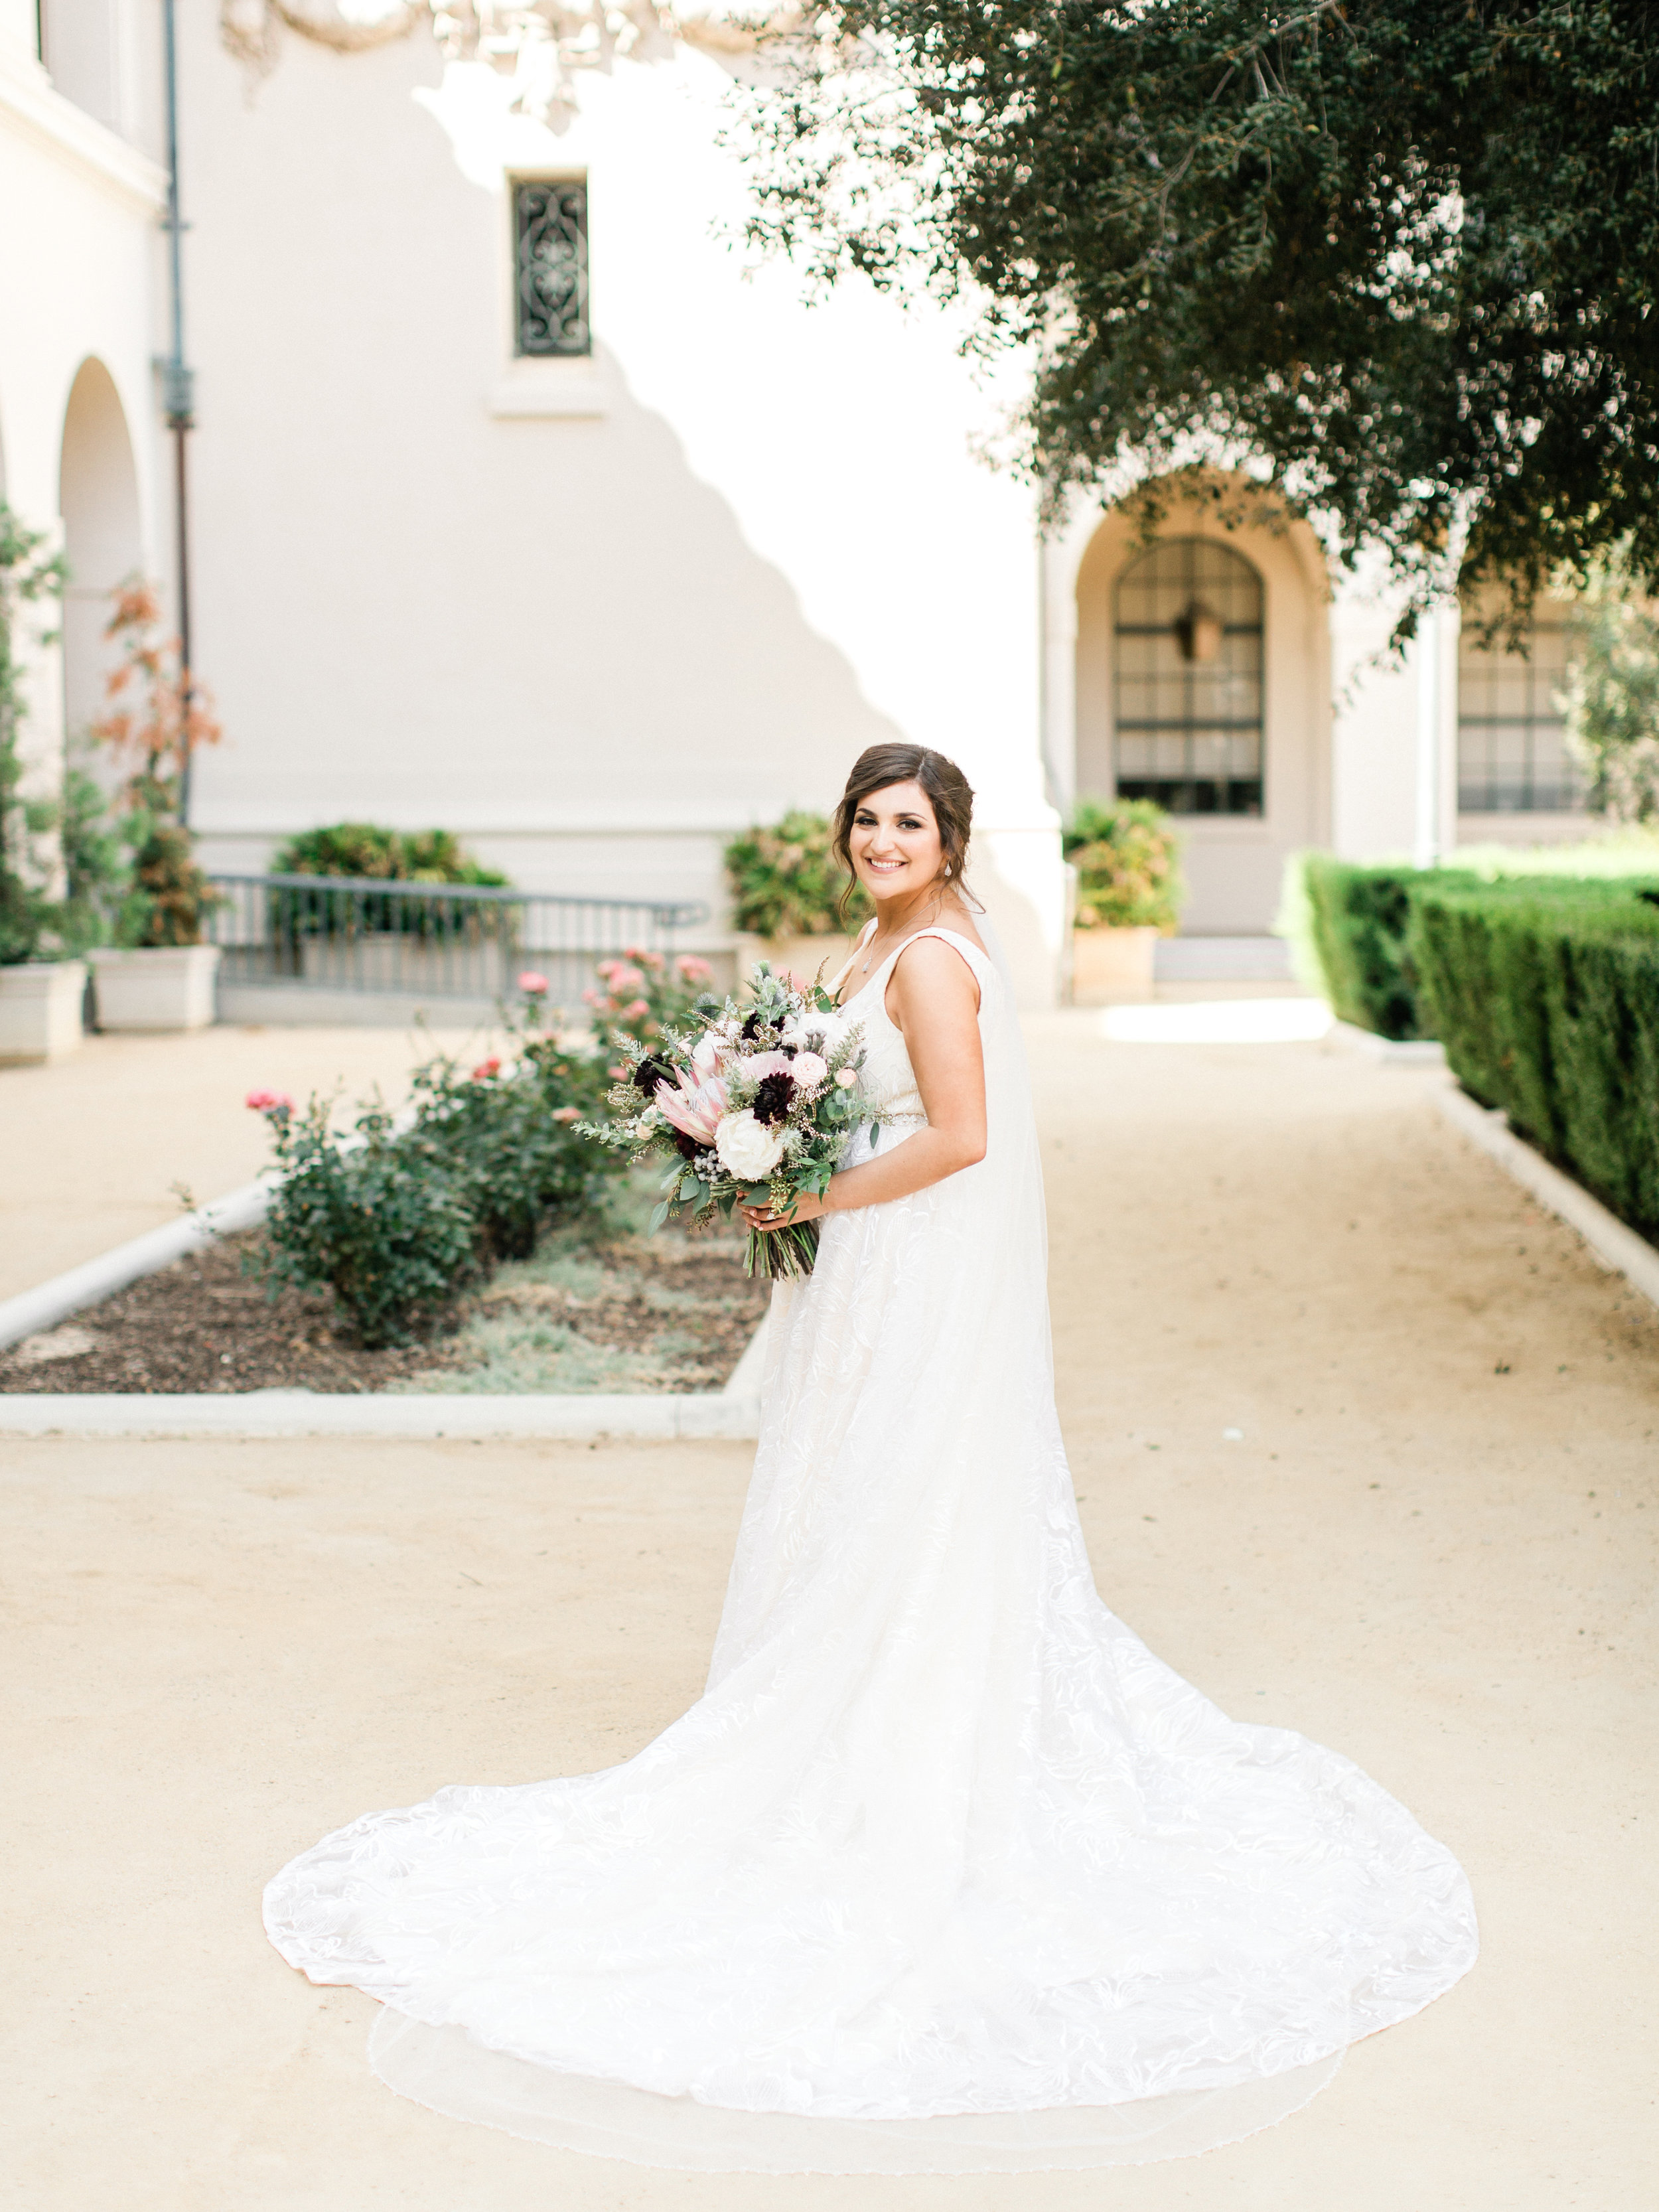 Stunning white dress for Pasadena bride-to-be